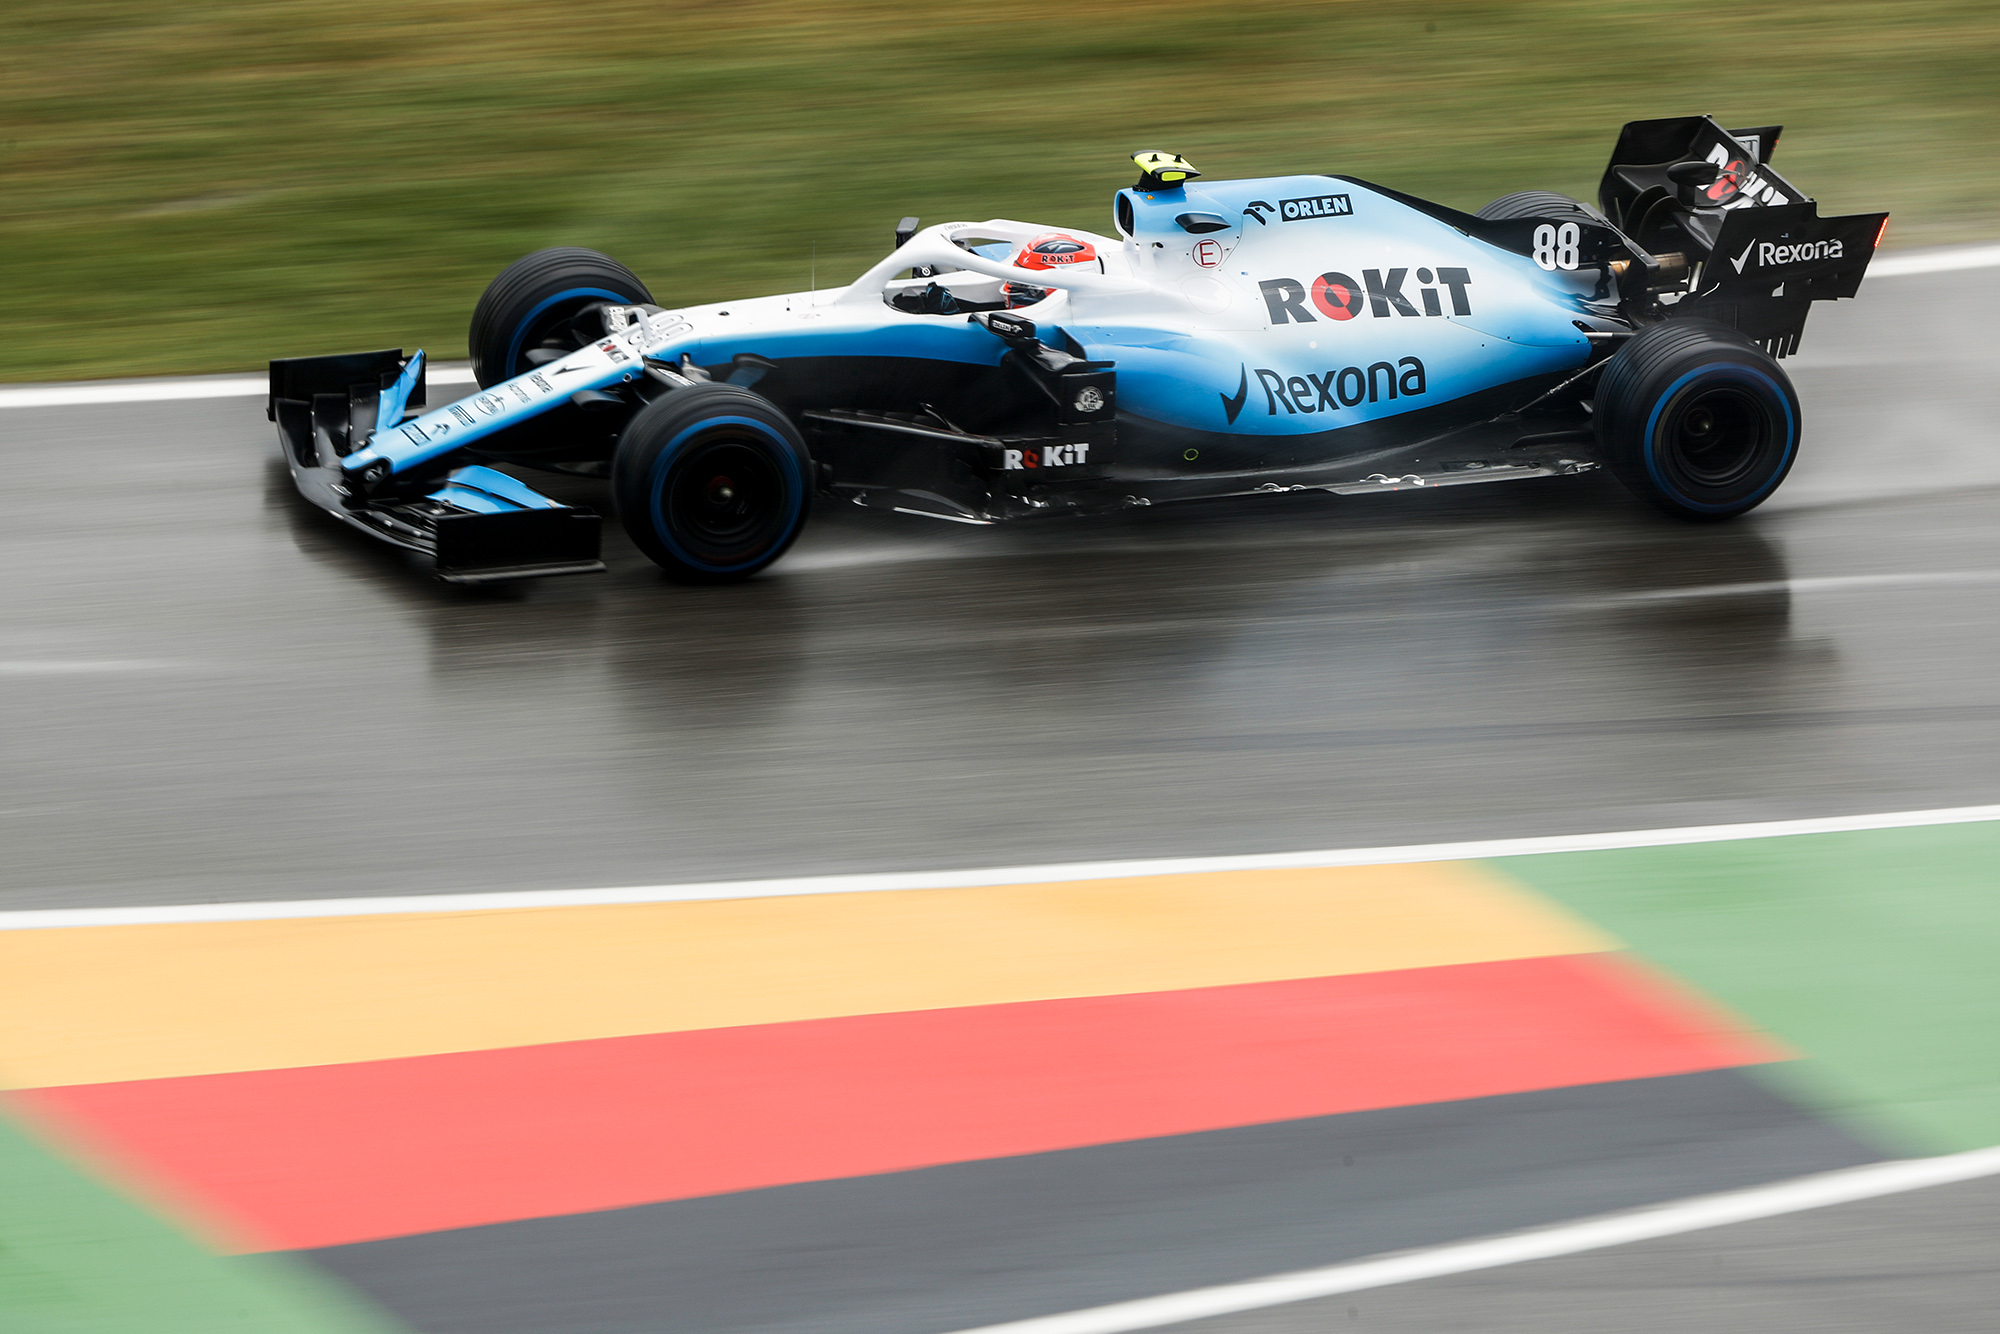 Robert Kubica races to a tenth position in the 2019 German Grand Prix